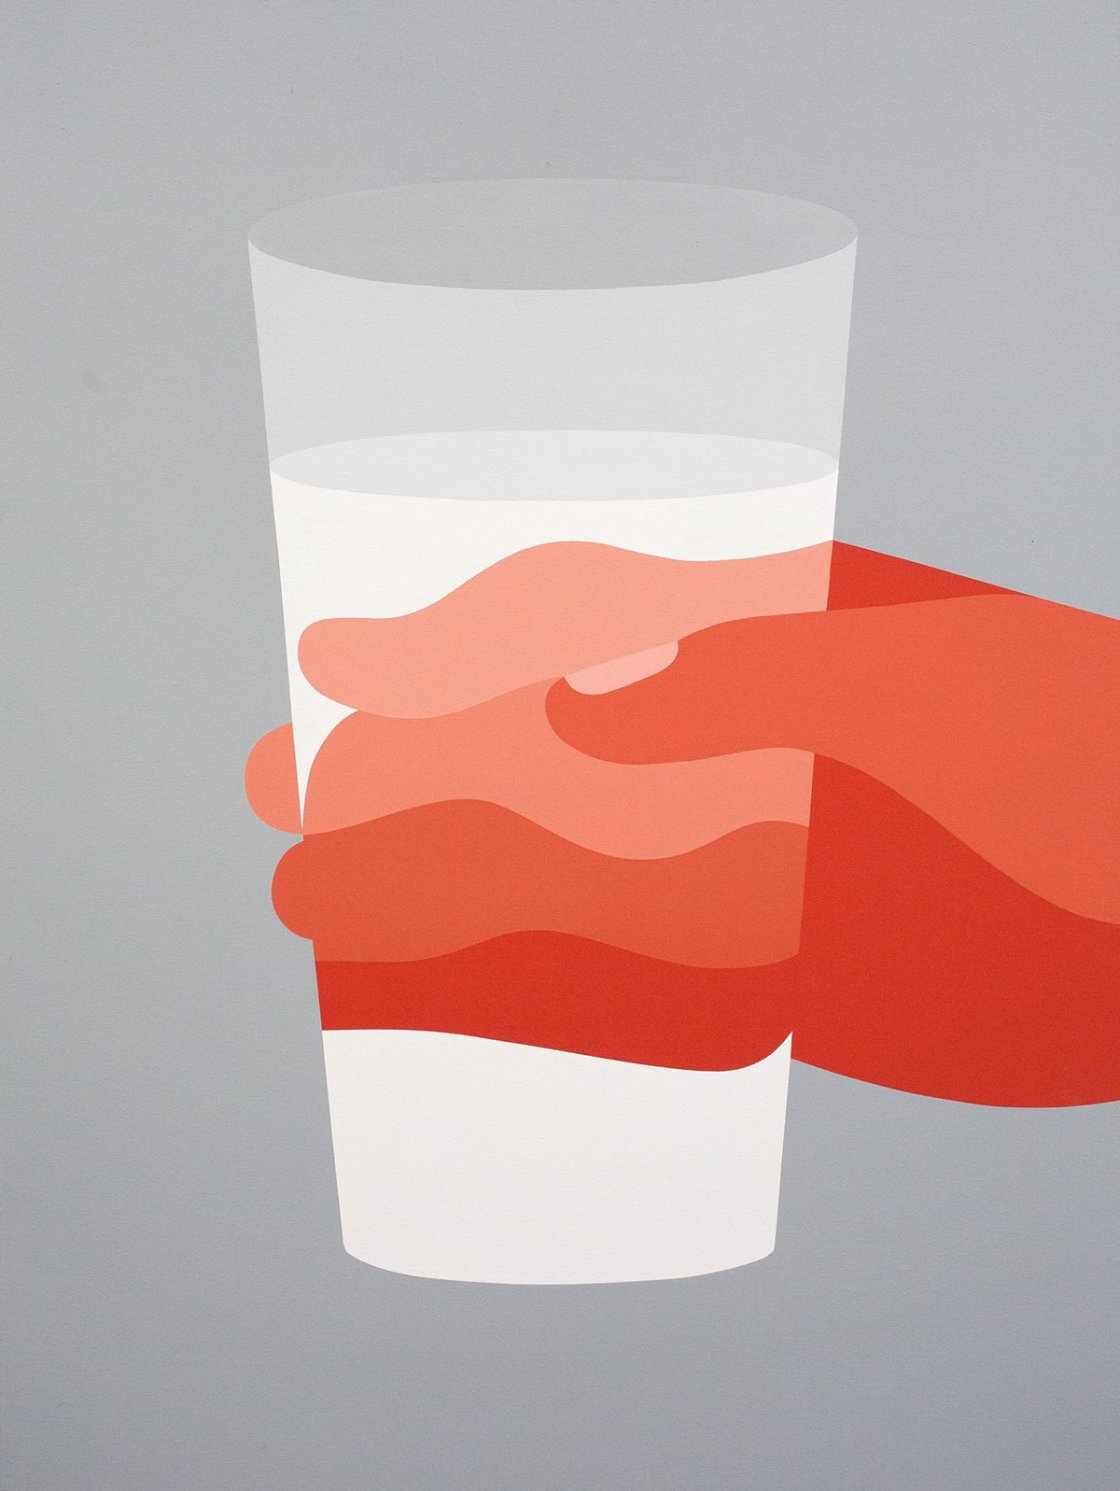 geoff_mcfetridge_paintings-designplayground_04